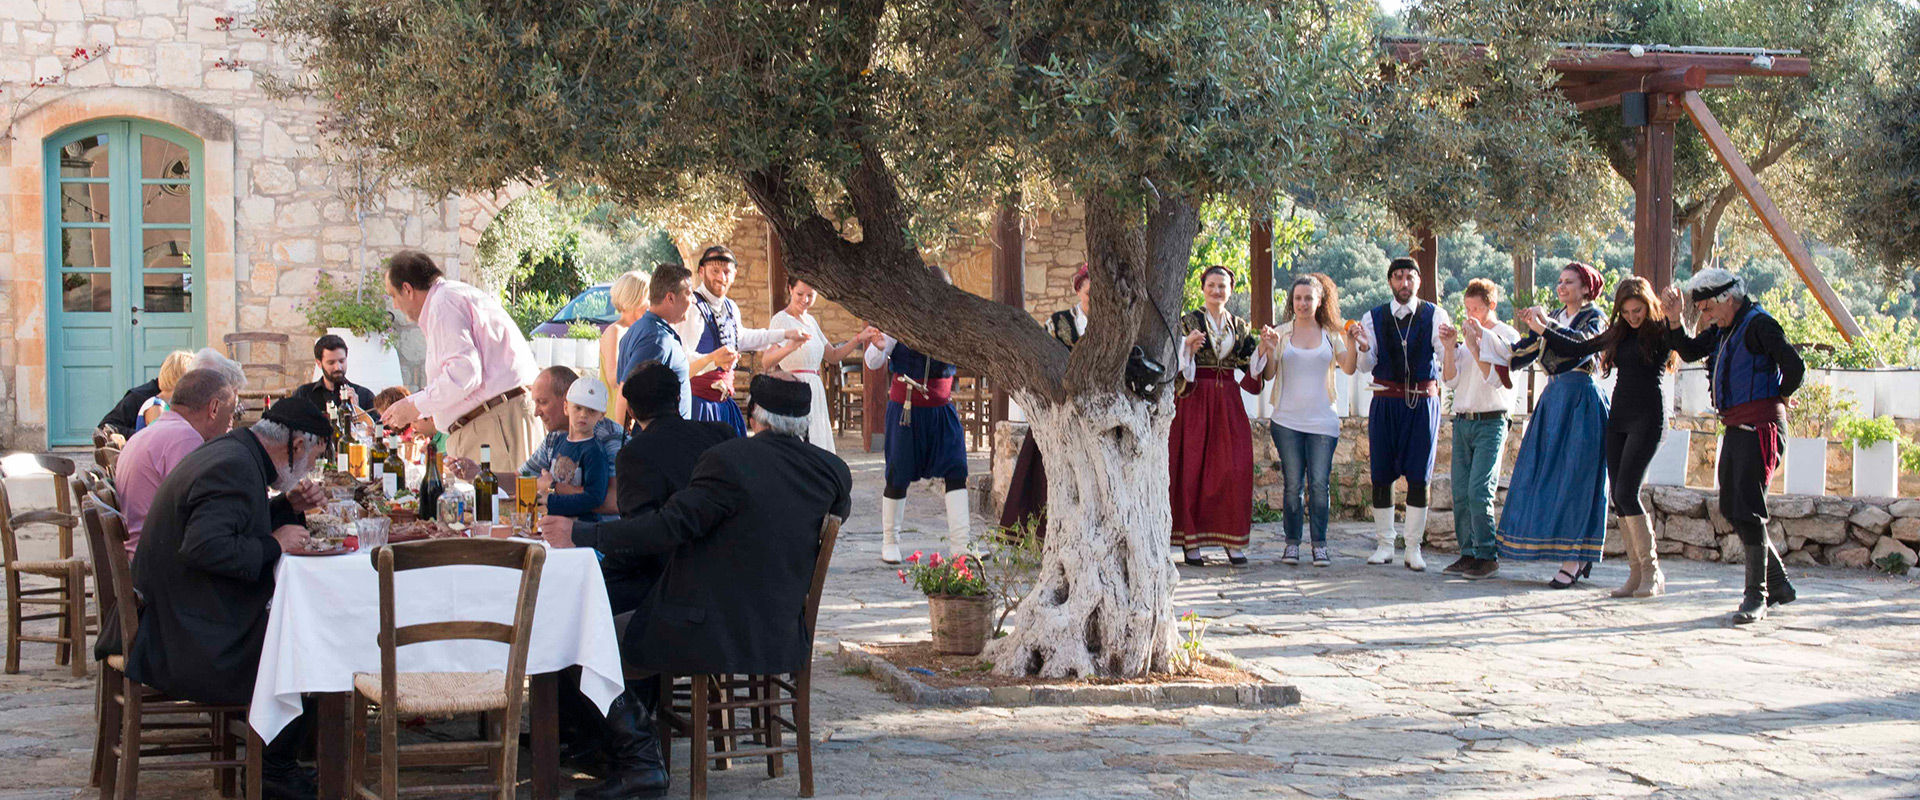 Traditional Events In Chania (part 1)